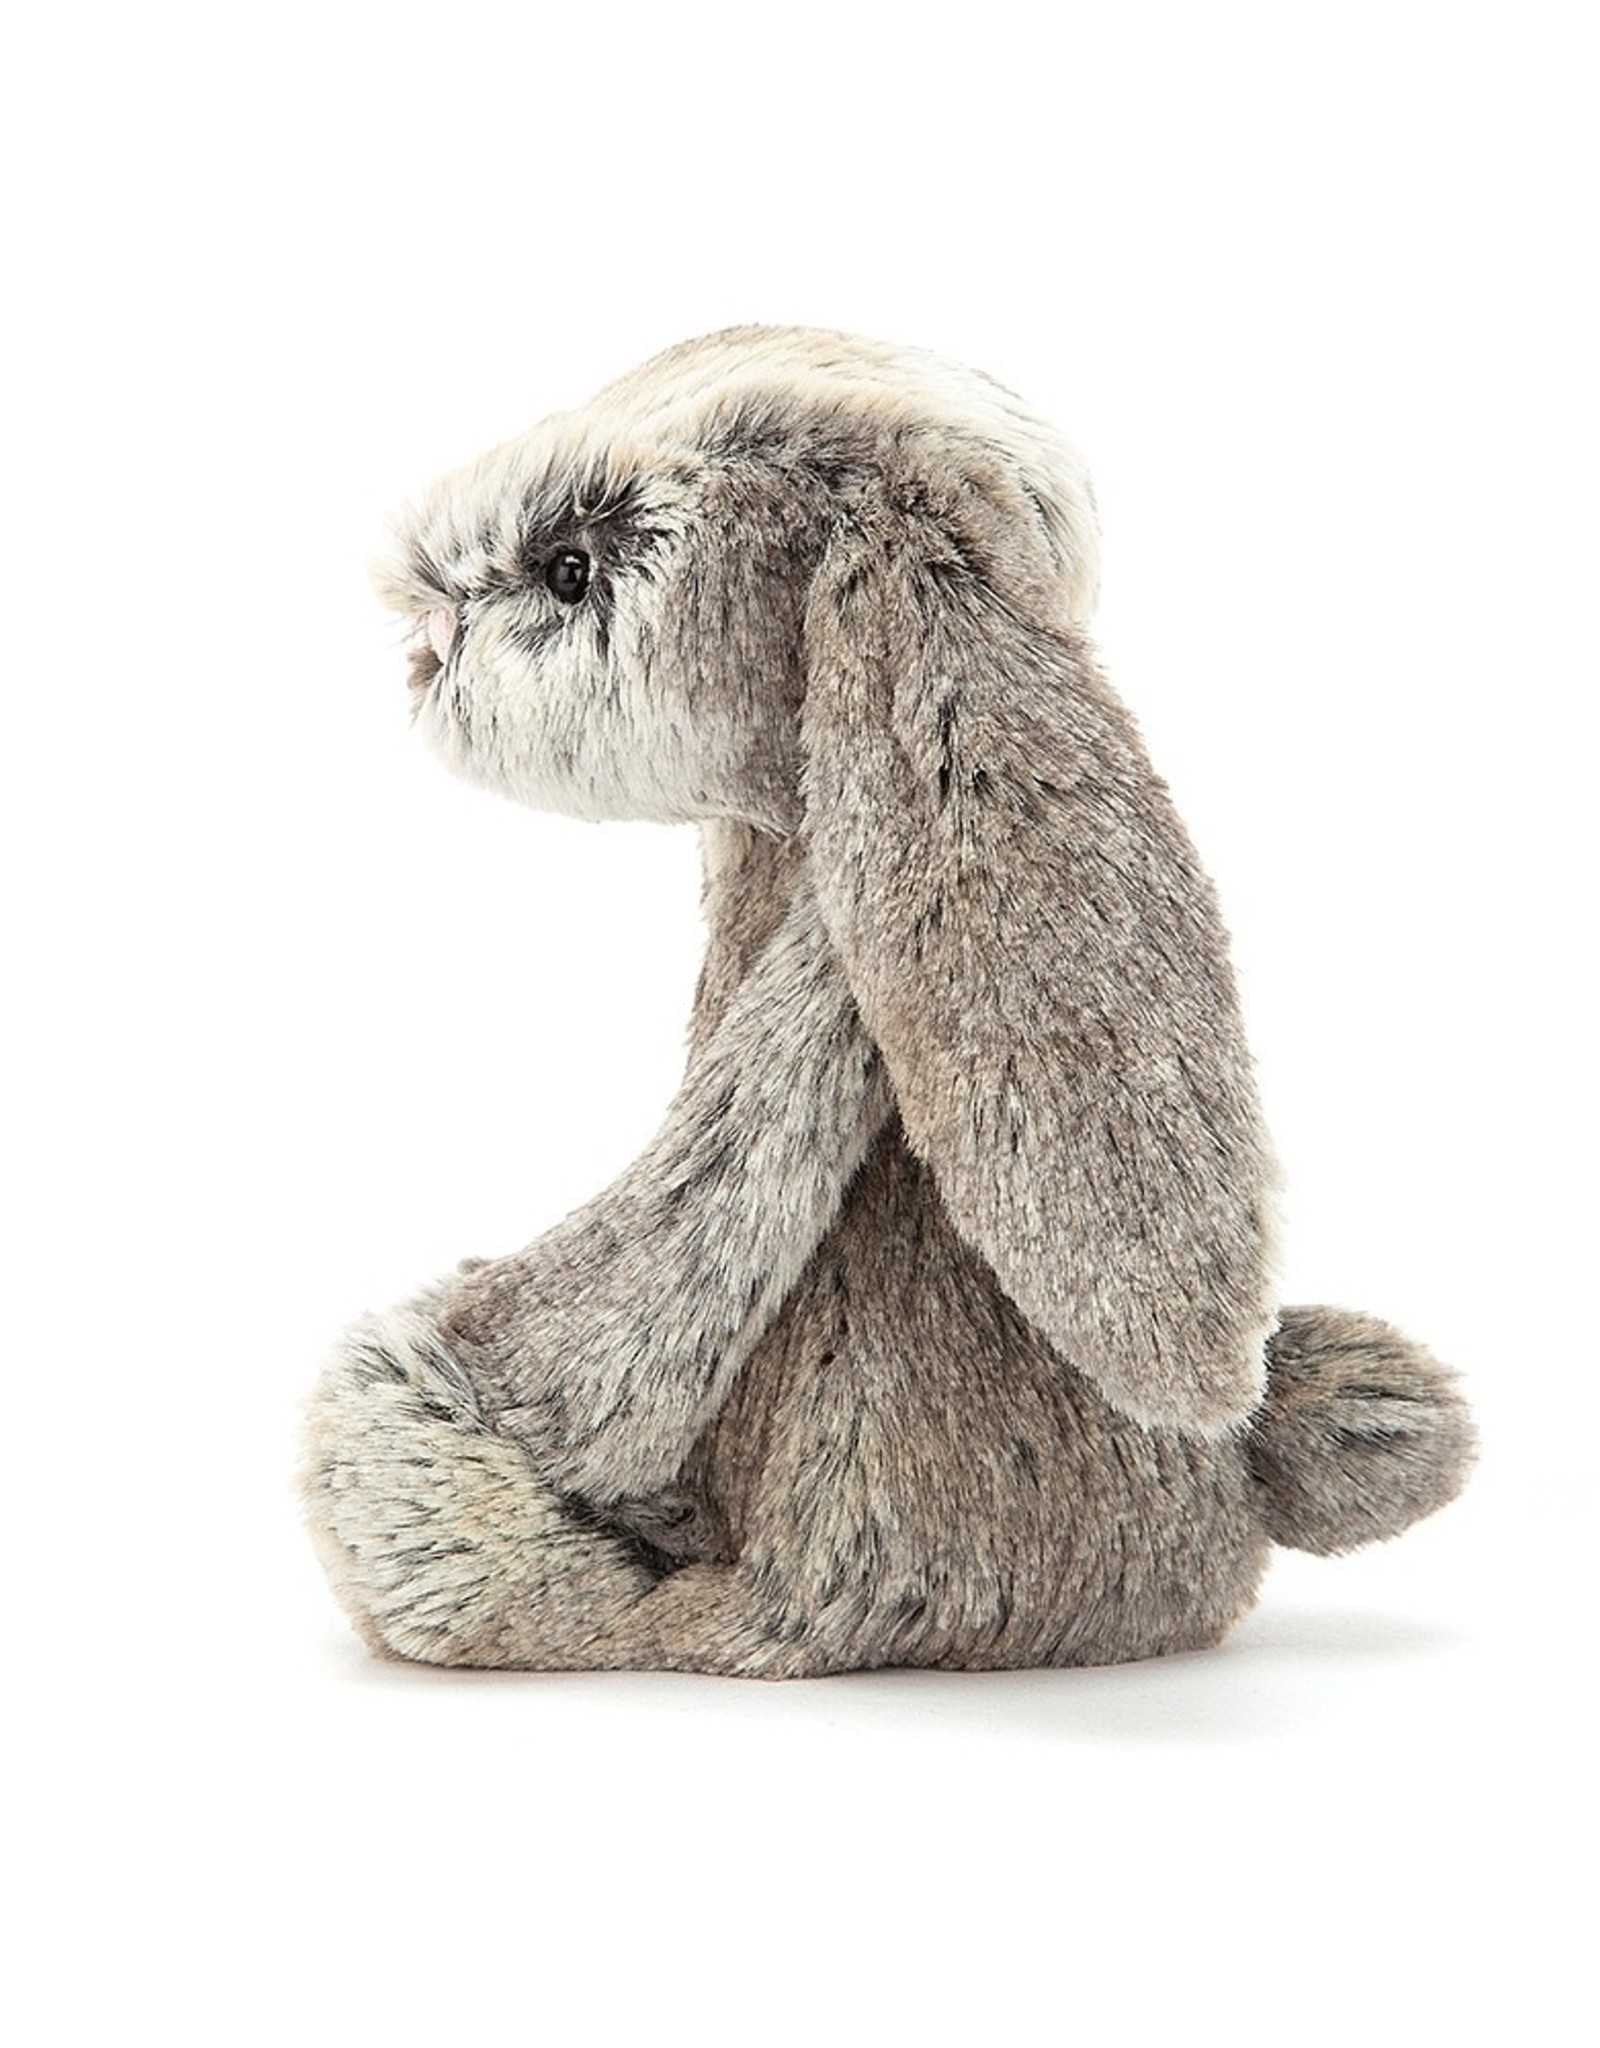 Jellycat Bashful Woodland Bunny: Small 7""